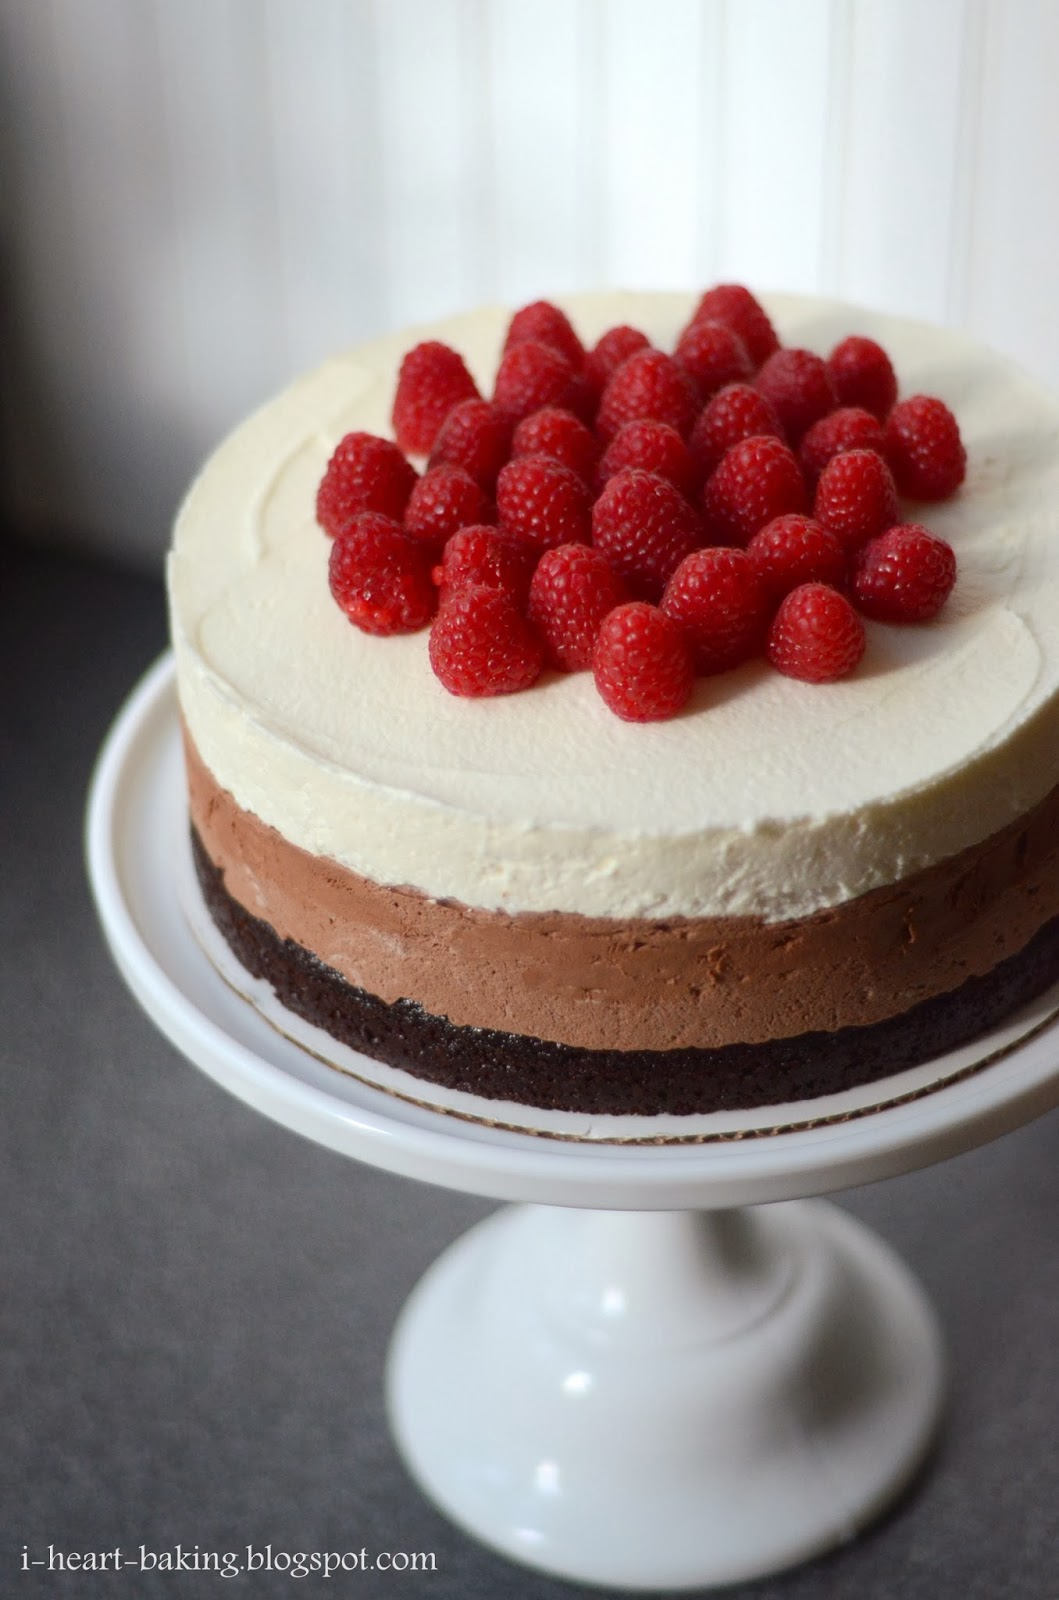 heart baking!: two triple chocolate mousse cakes with raspberries